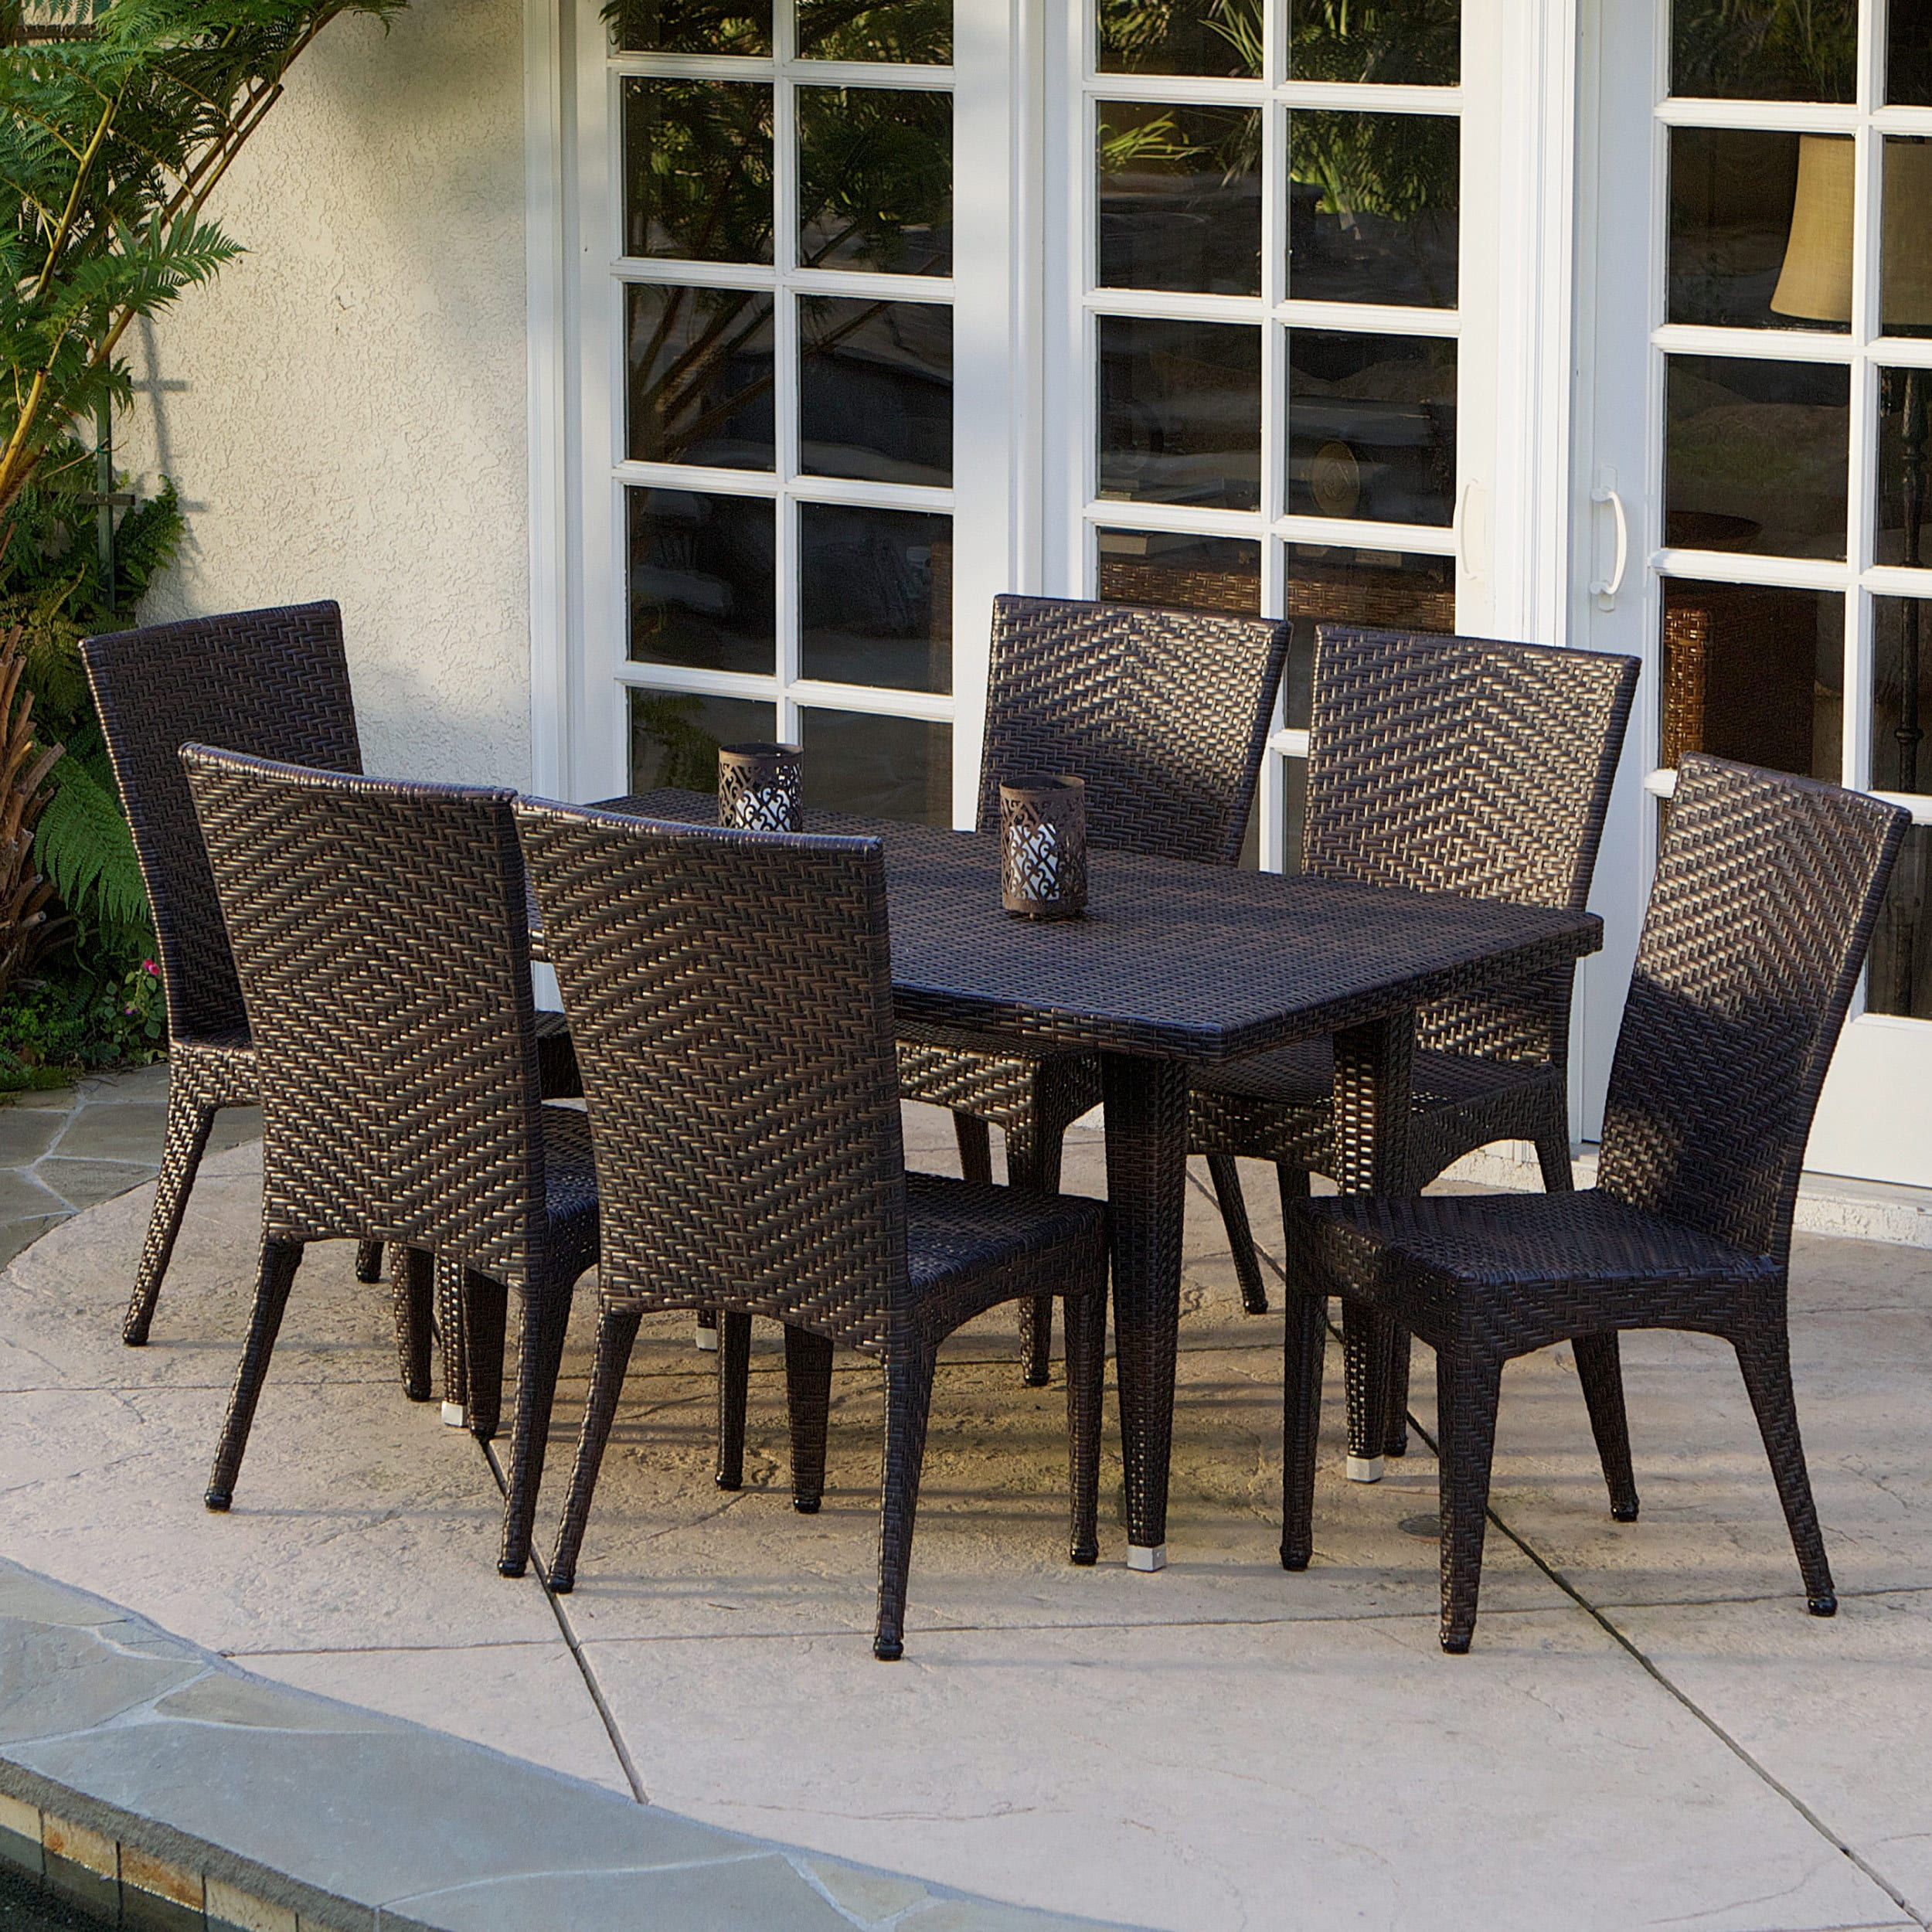 Multibrown 7-Pcs Set Christopher Knight Home Brooke Outdoor Dining Set